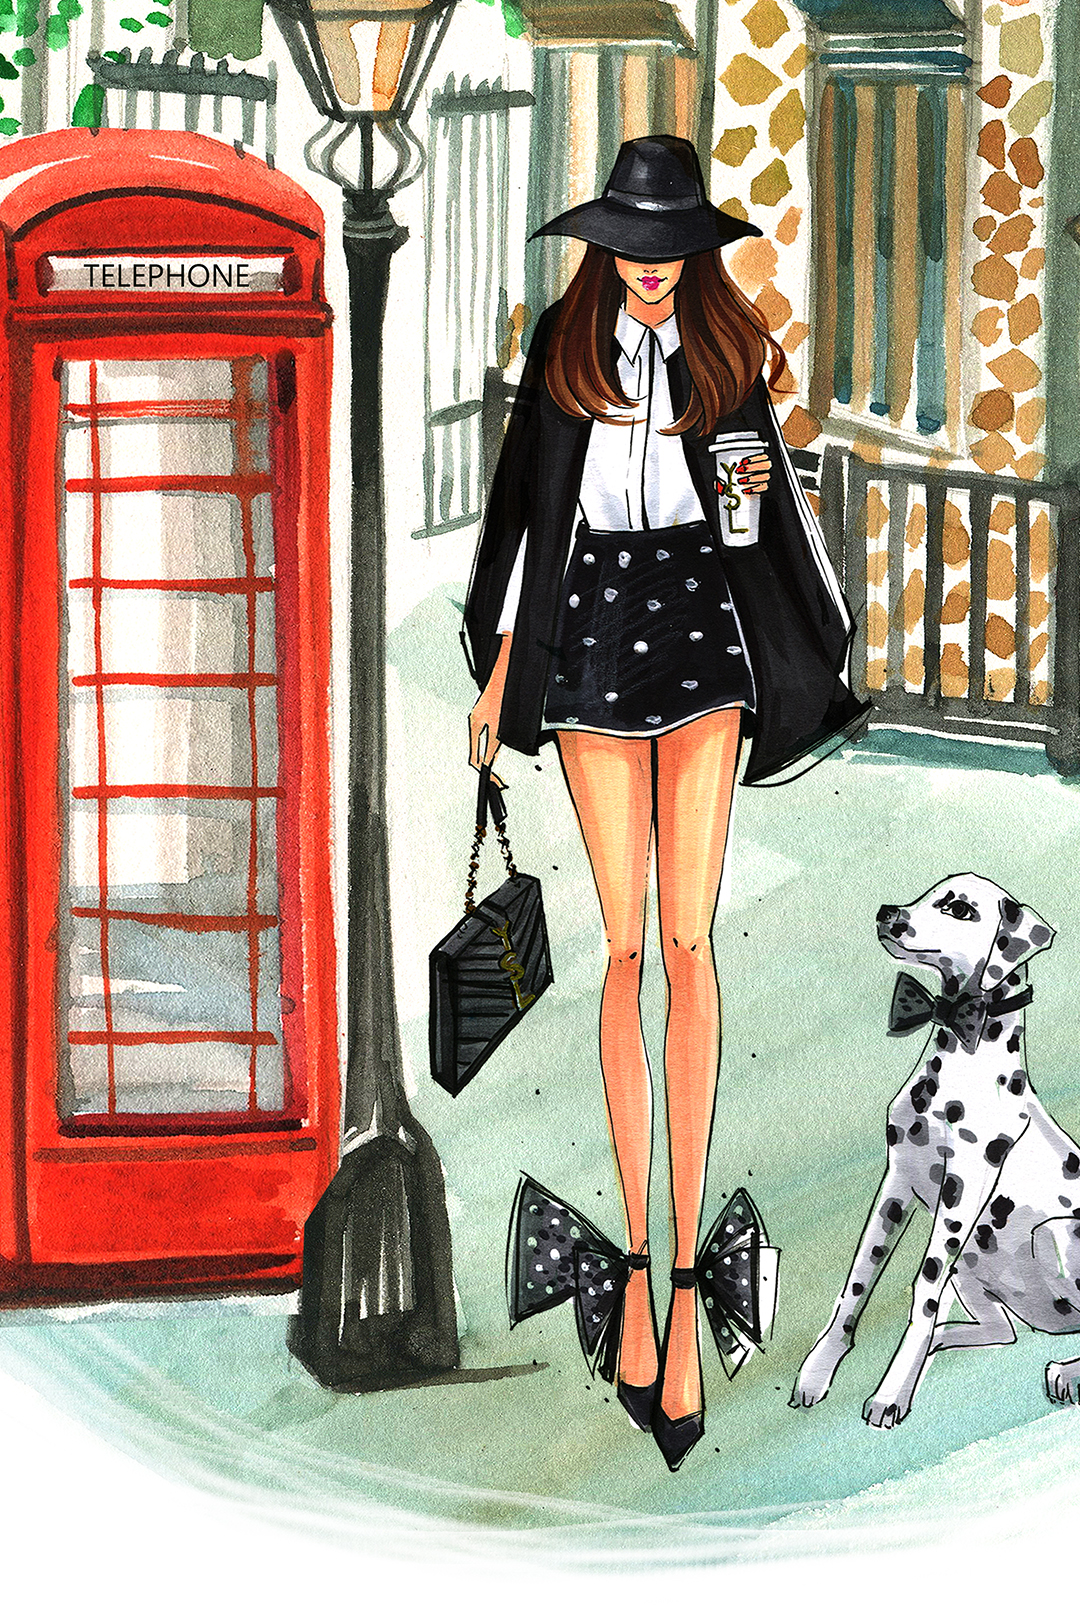 London fashion week illustration by Houston fashion illustrator Rongrong DeVoe